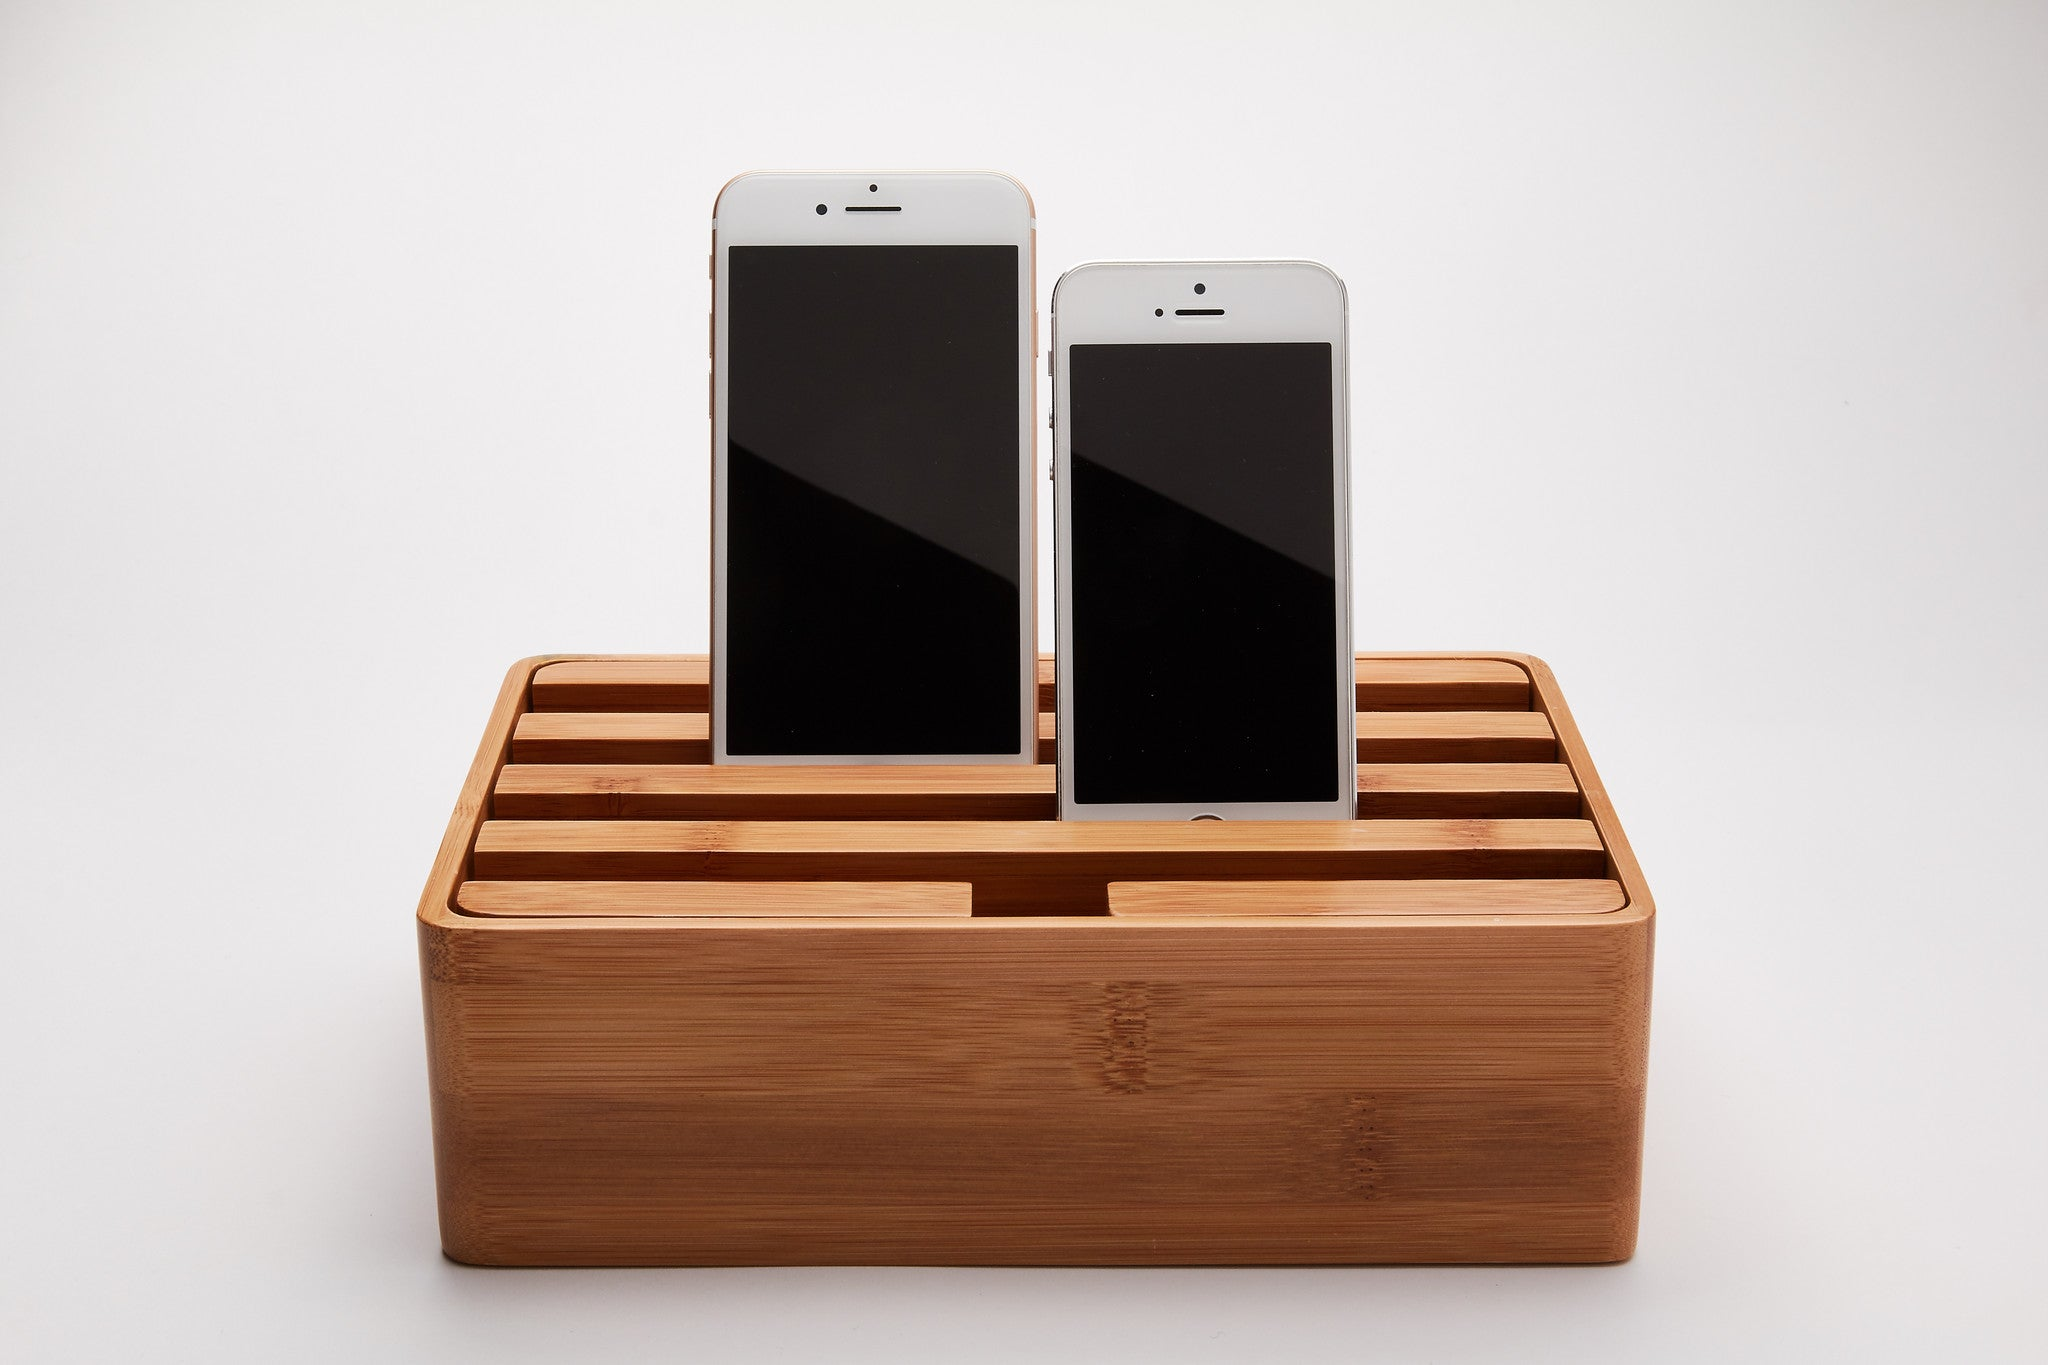 alldock stilfuld ladestation til ipad iphone og andet usb udstyr. Black Bedroom Furniture Sets. Home Design Ideas